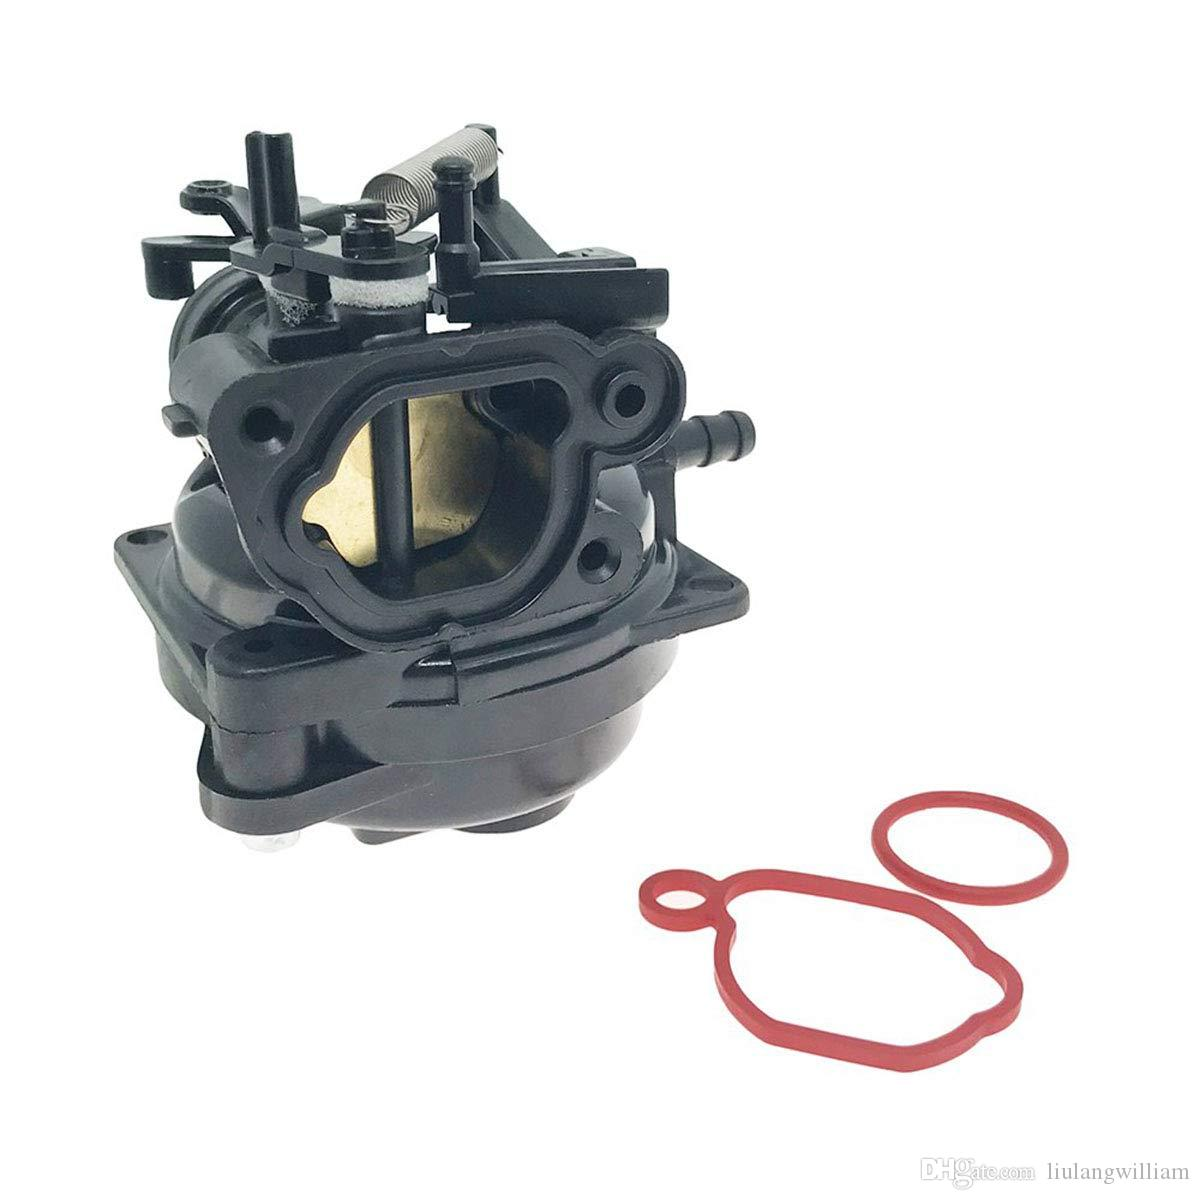 ZYHW New 799584 Carburetor Carb Replacement for Briggs & Stratton 550EX 09P702 9P702 Engine with Mounting Gasket Kit